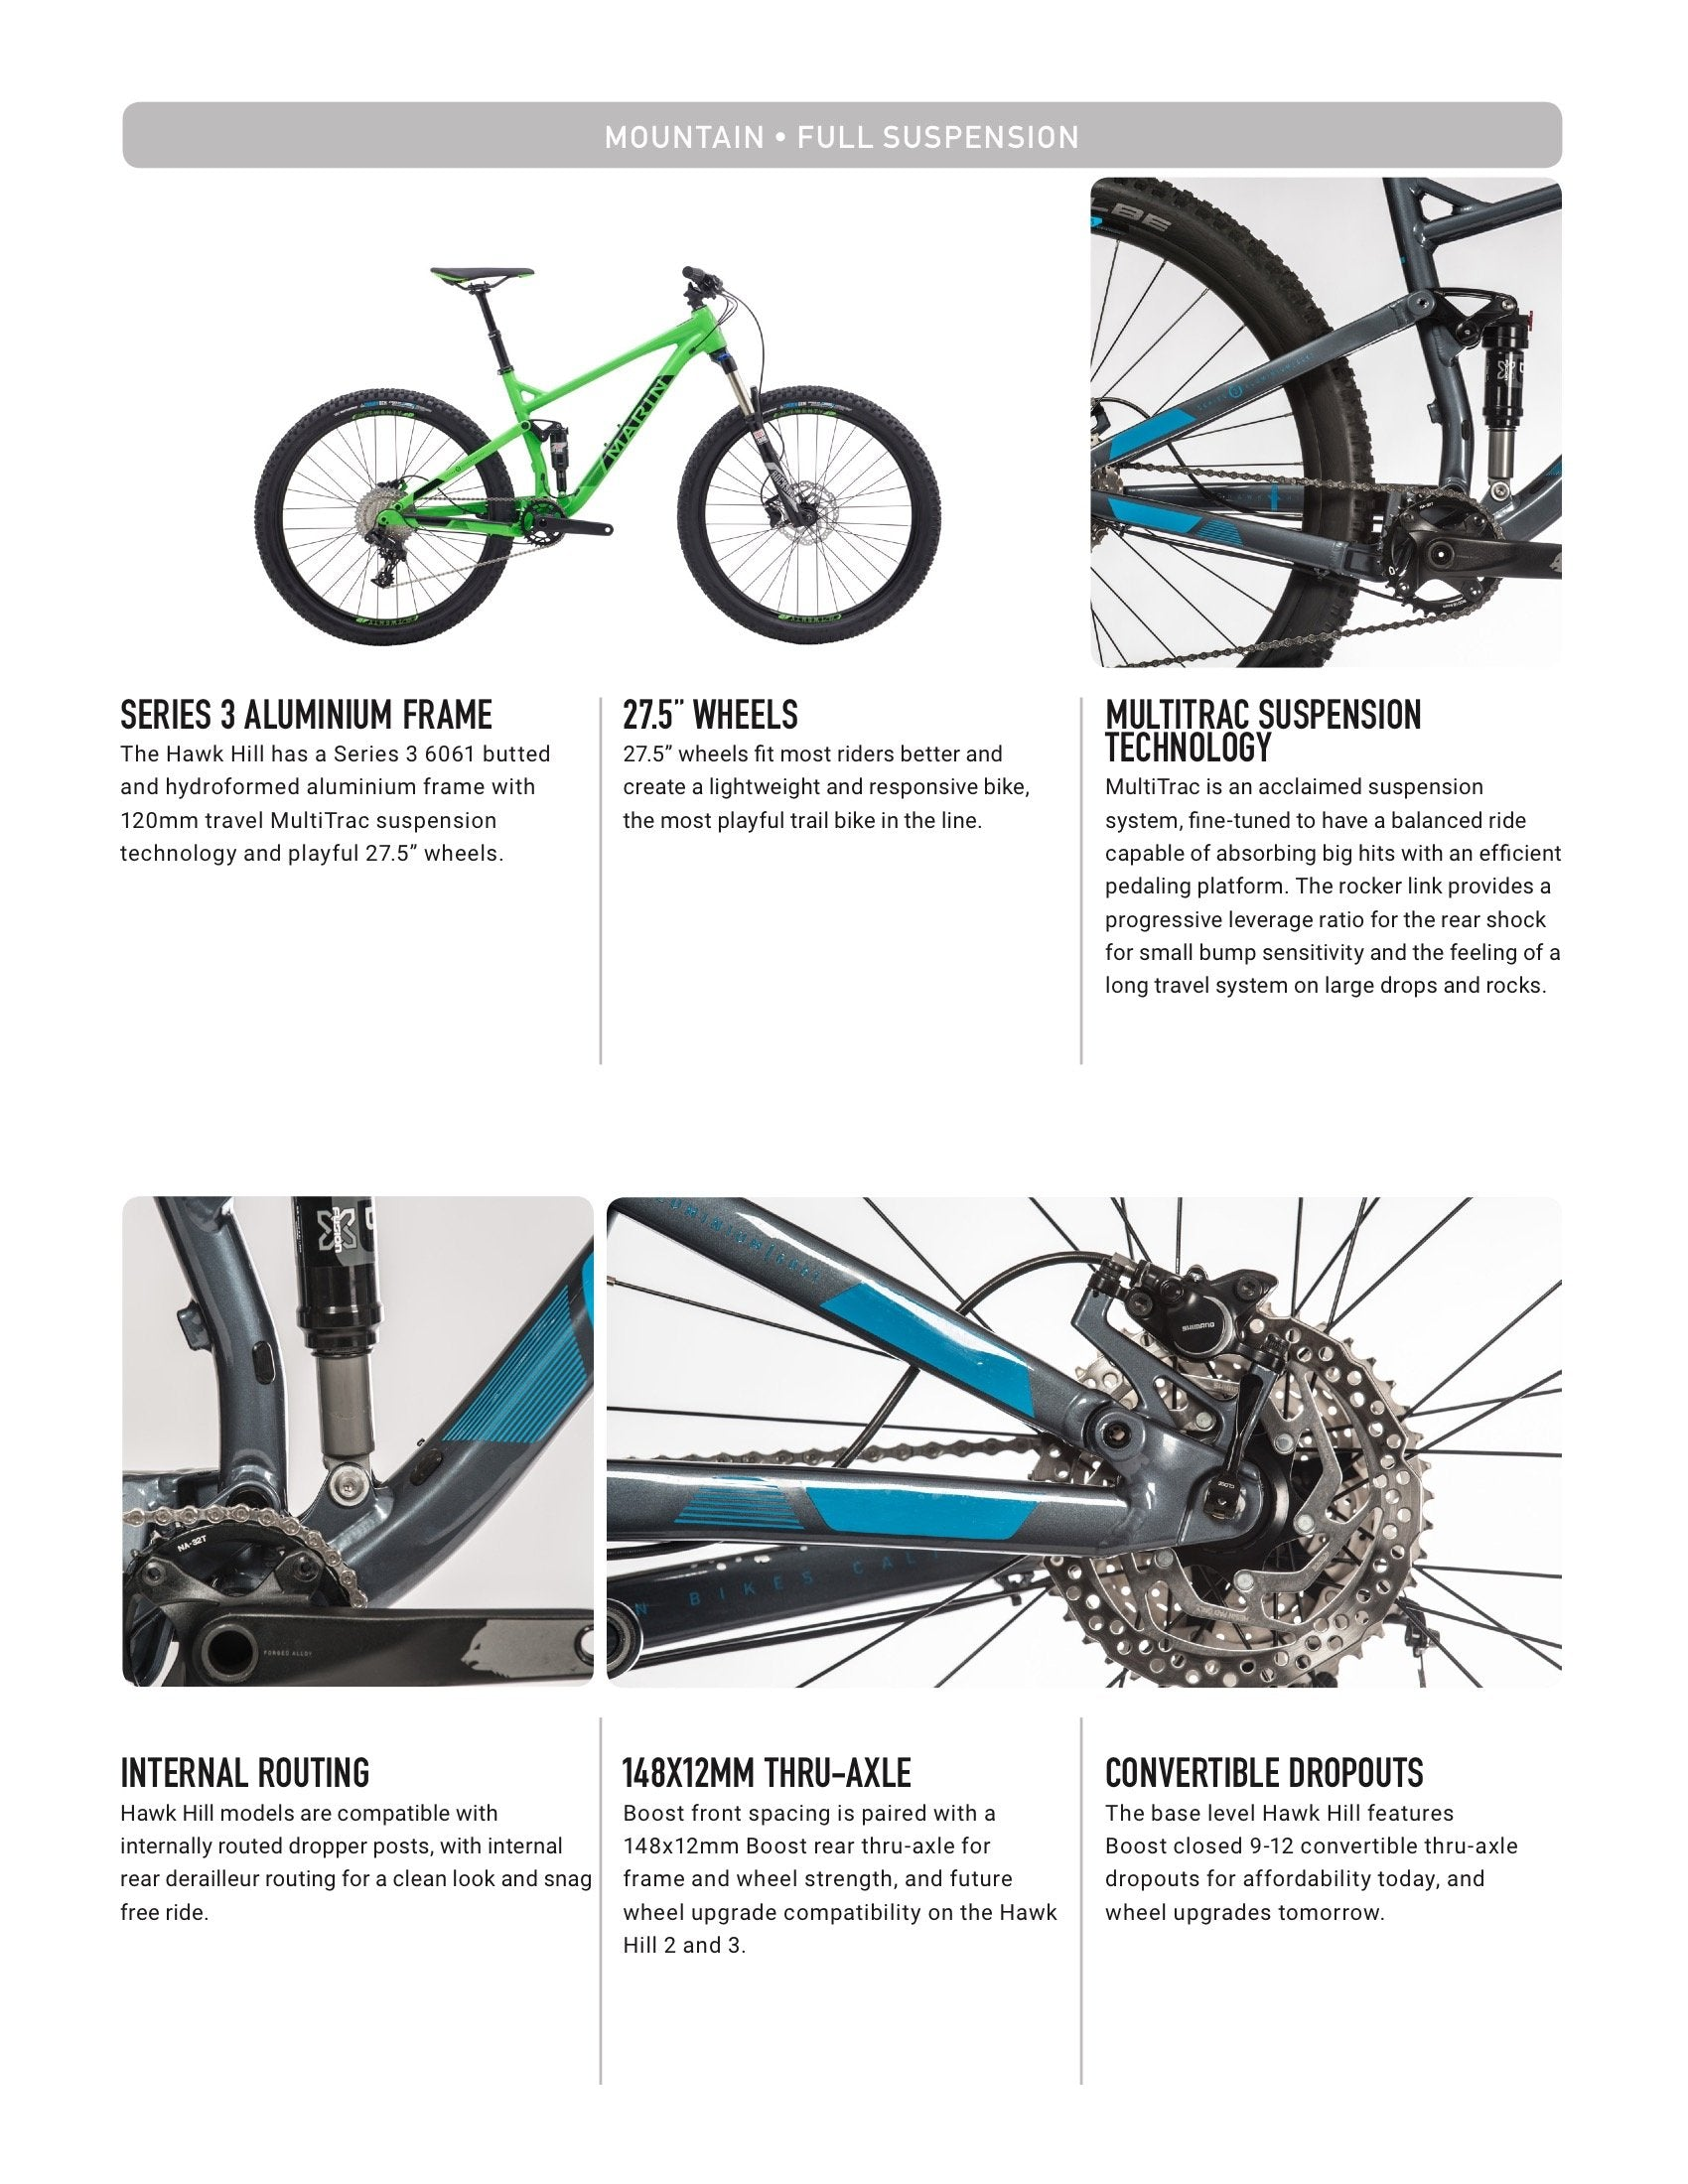 Hardtail Mountain Bikes Tagged Off Road Spokes Bike Parts On To Absorb Bumps In A Shock Absorber With Hard Tail Have Front Suspension Forks And